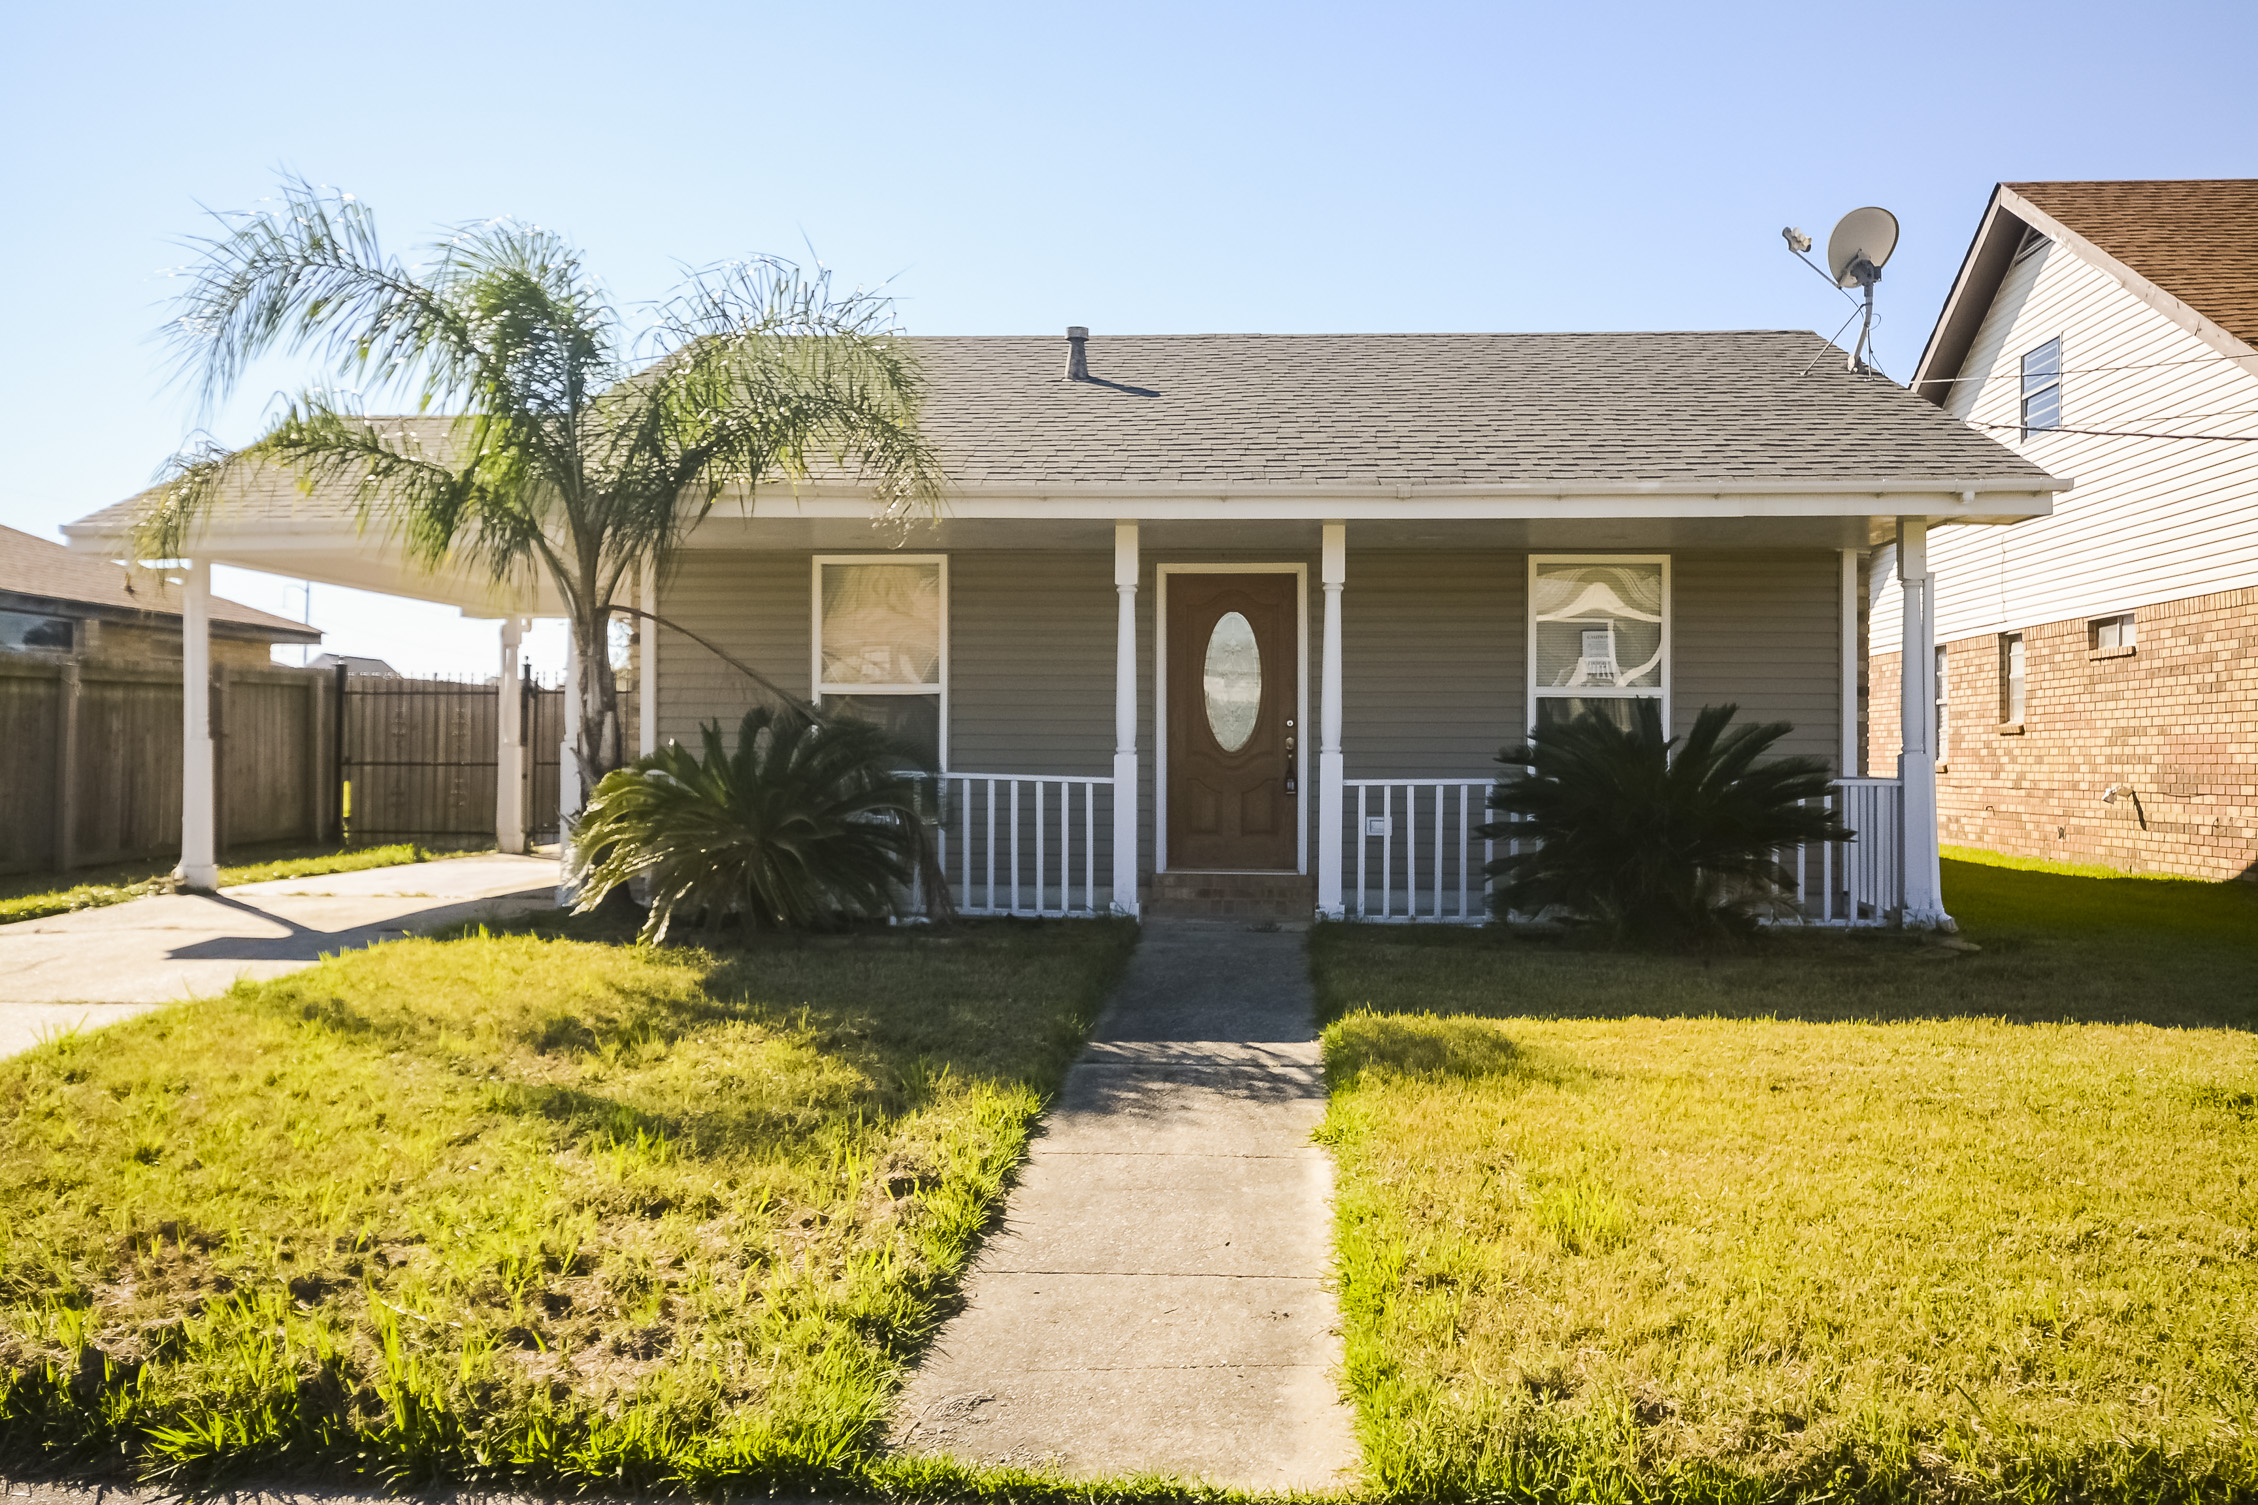 7542 Lehigh St Listing in New Orleans East